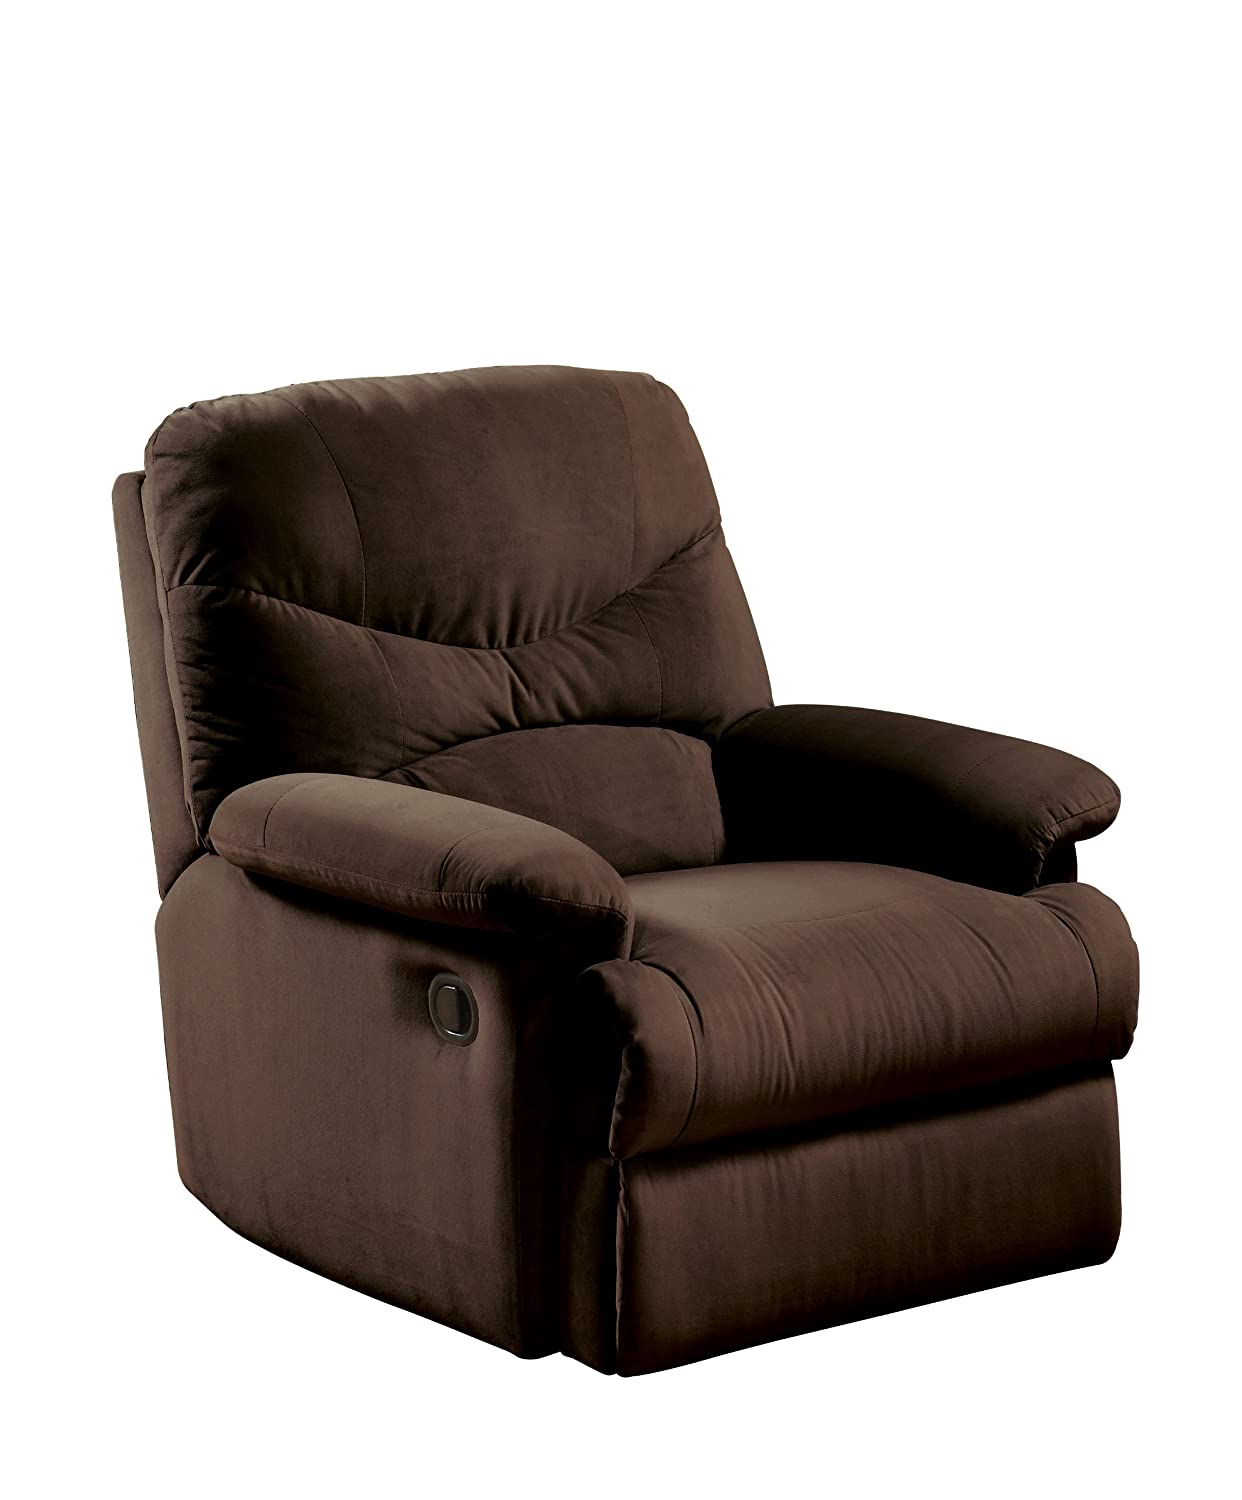 ACME 00632 Arcadia Recliner  Oakwood Chocolate Microfiber. Amazon com  Chairs   Living Room Furniture  Home  amp  Kitchen